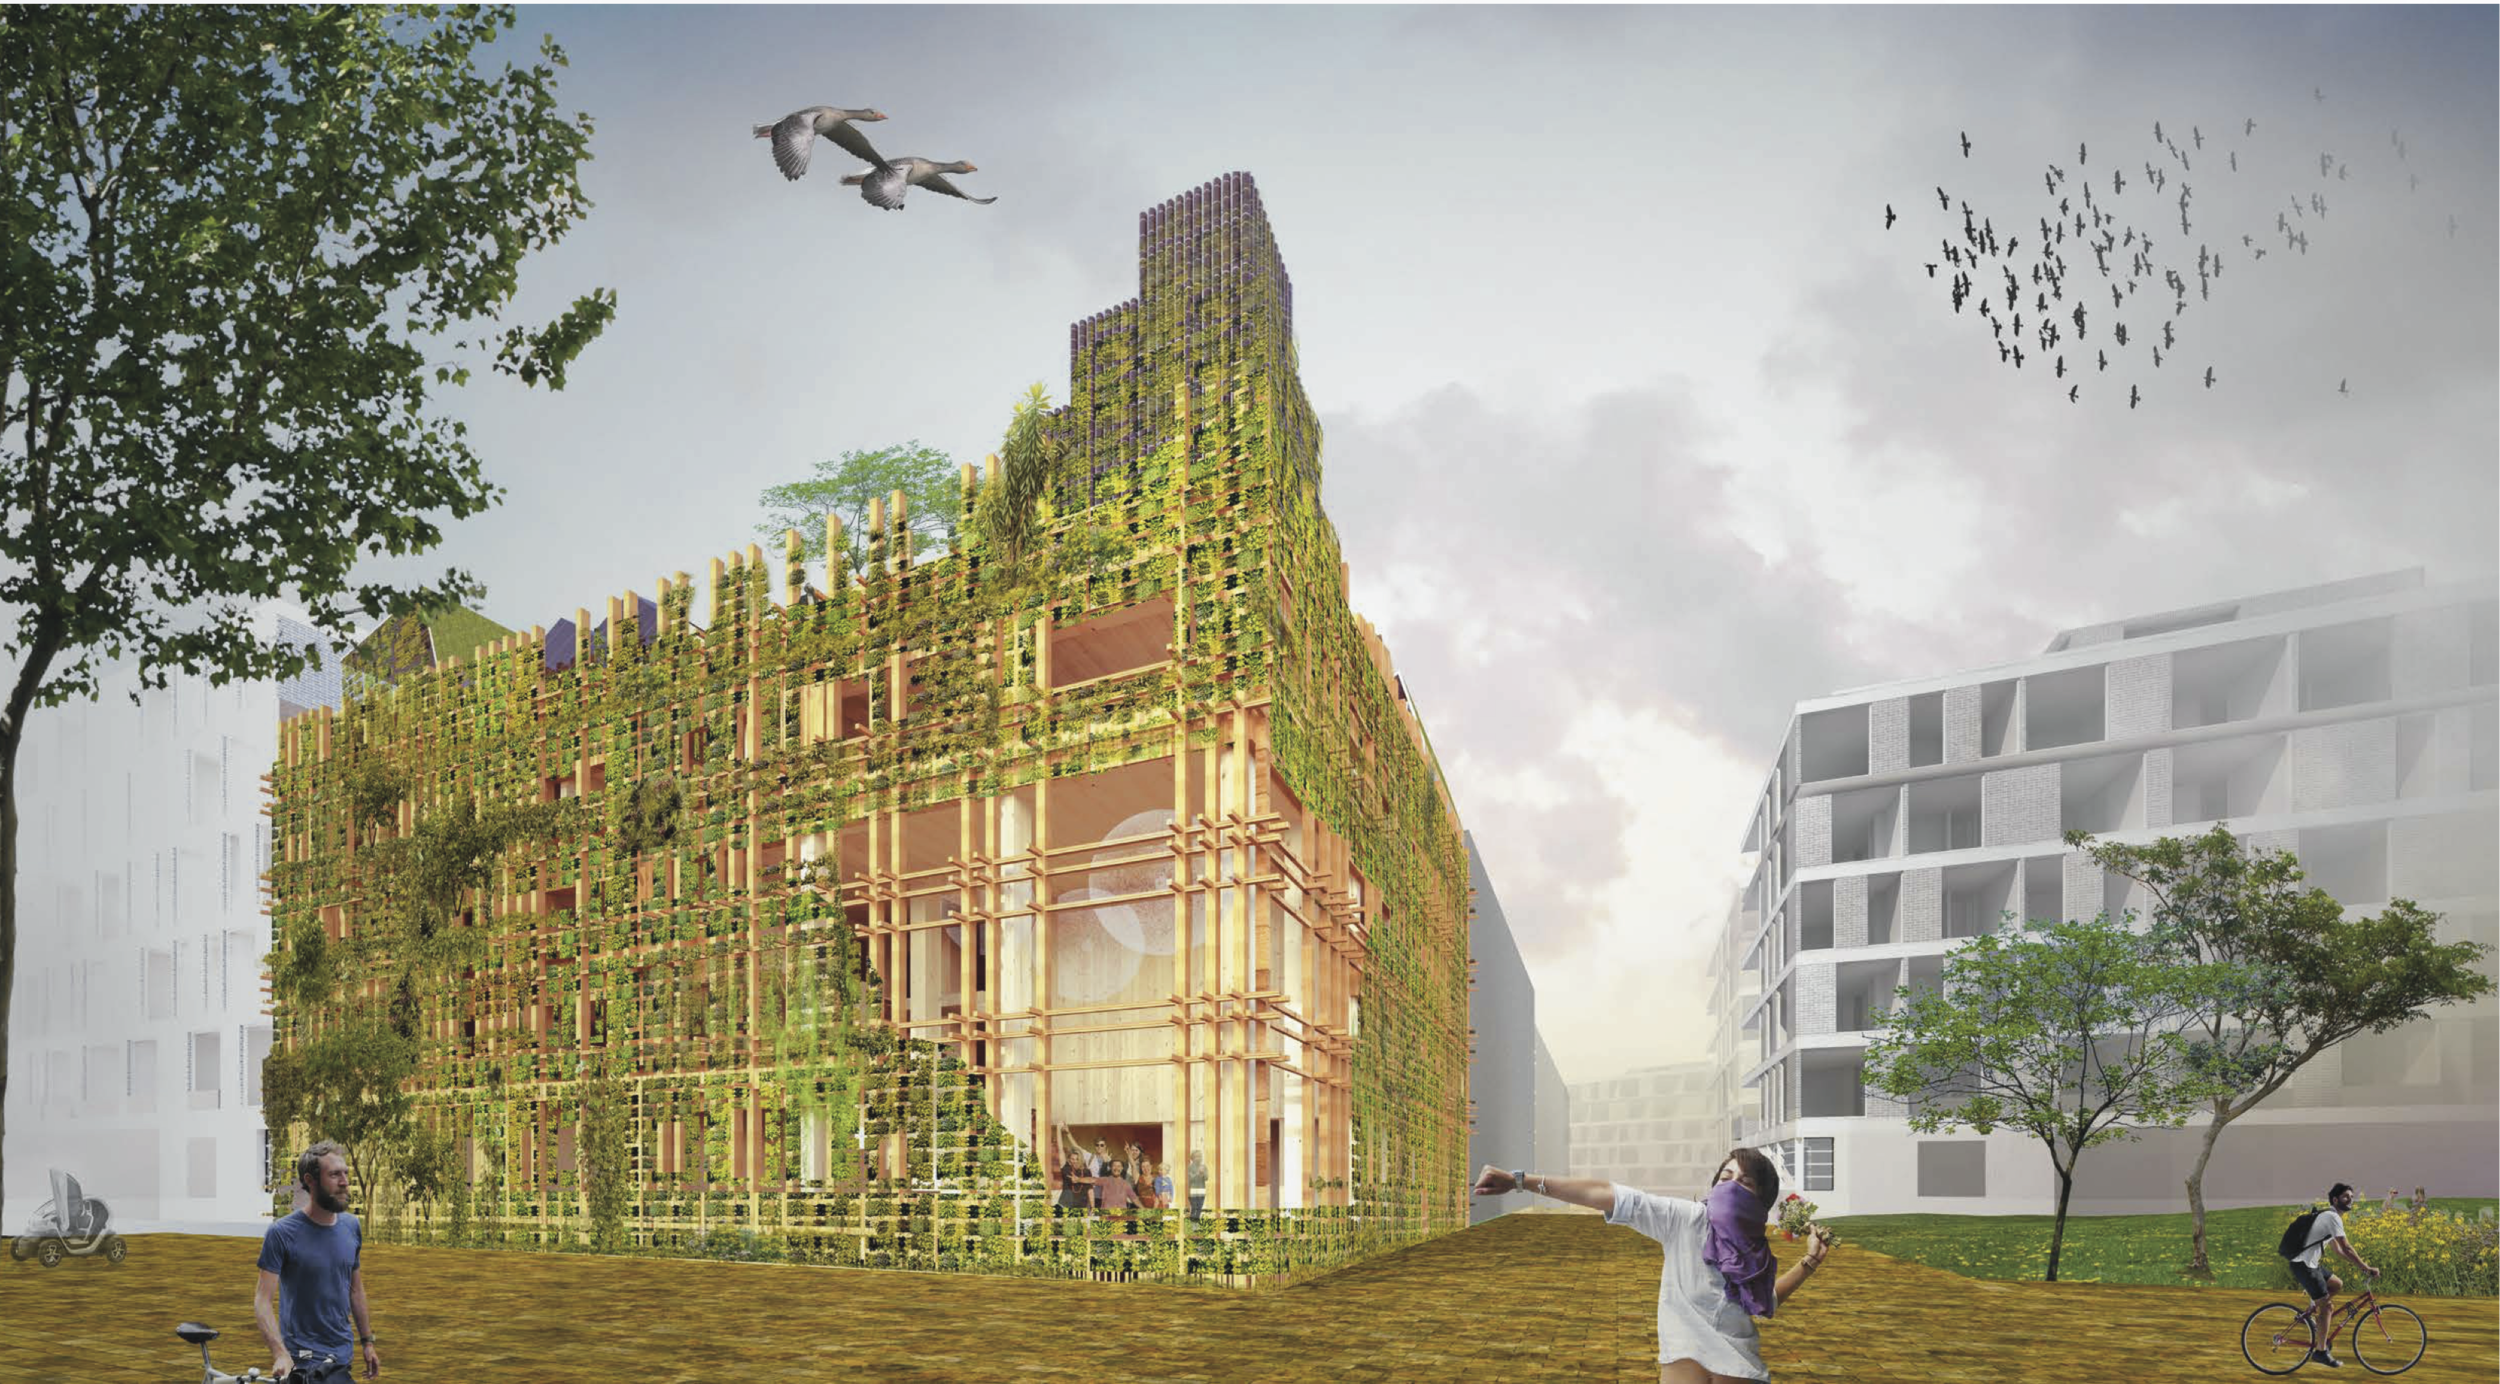 Een groene echte jungle in de urban jungle (c) Natrufied Architecture